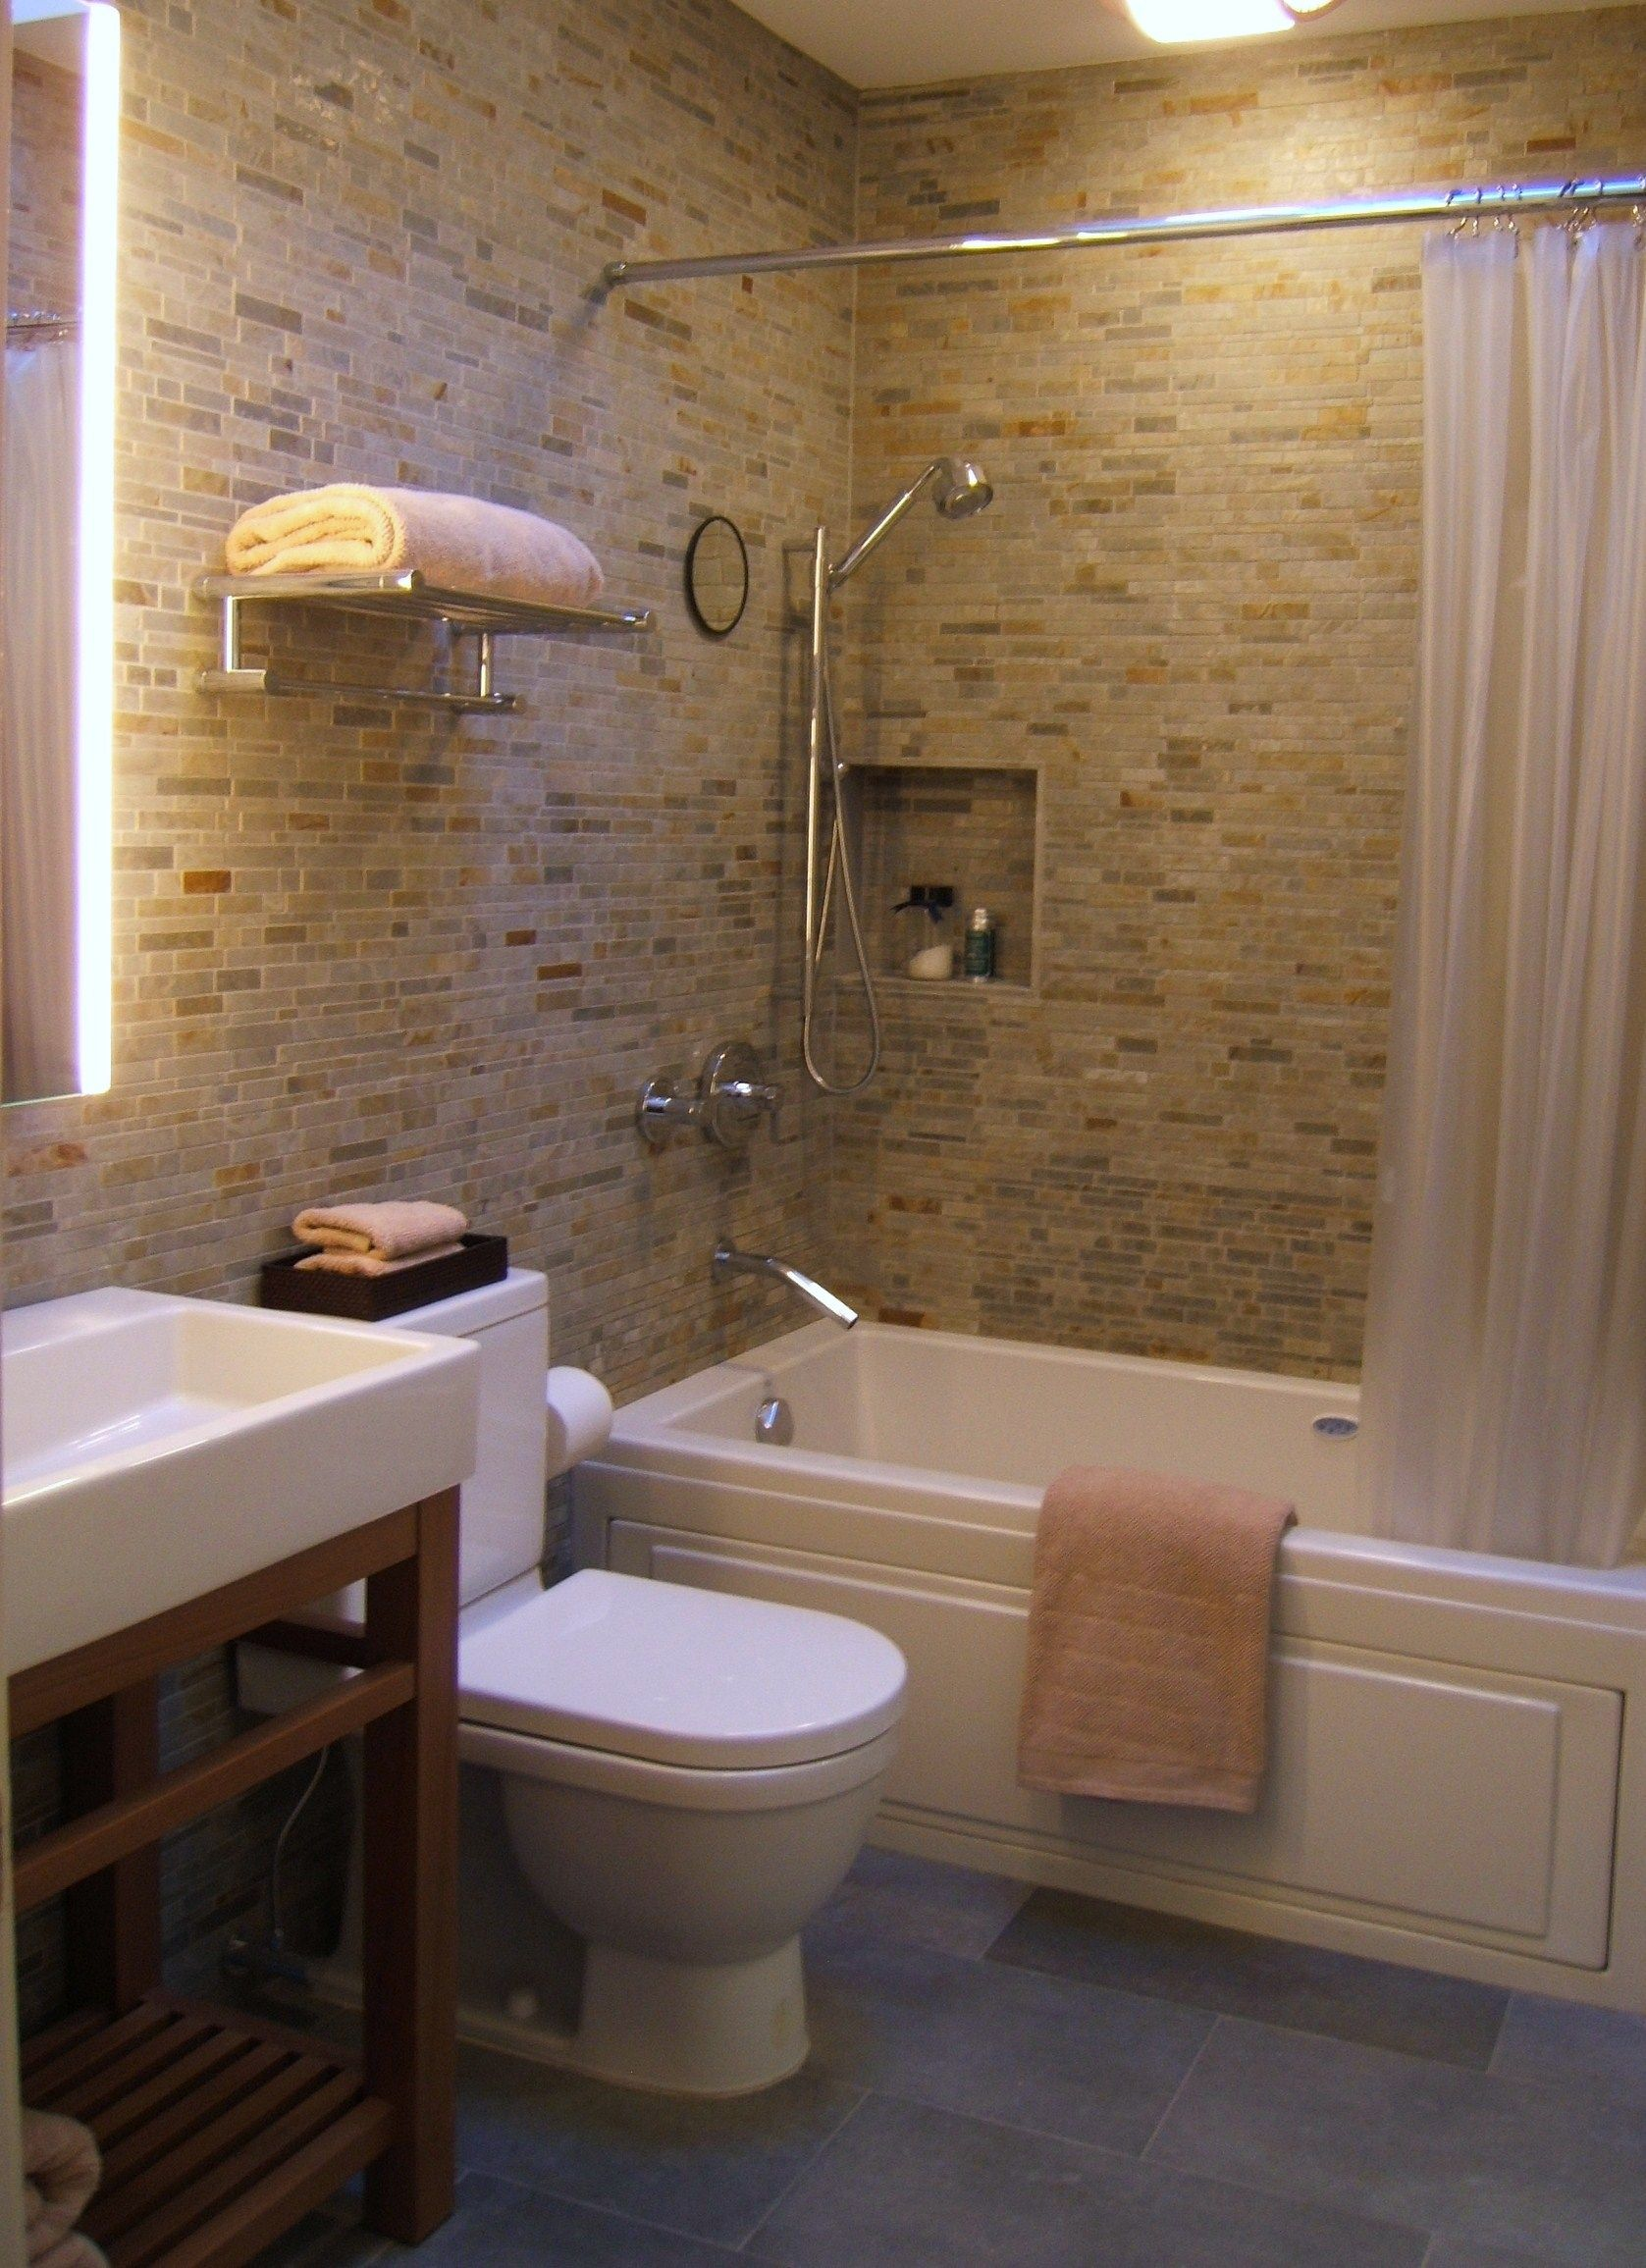 Small bathroom designs south africa small bath pinterest small bathroom designs small Bathroom renovation design ideas